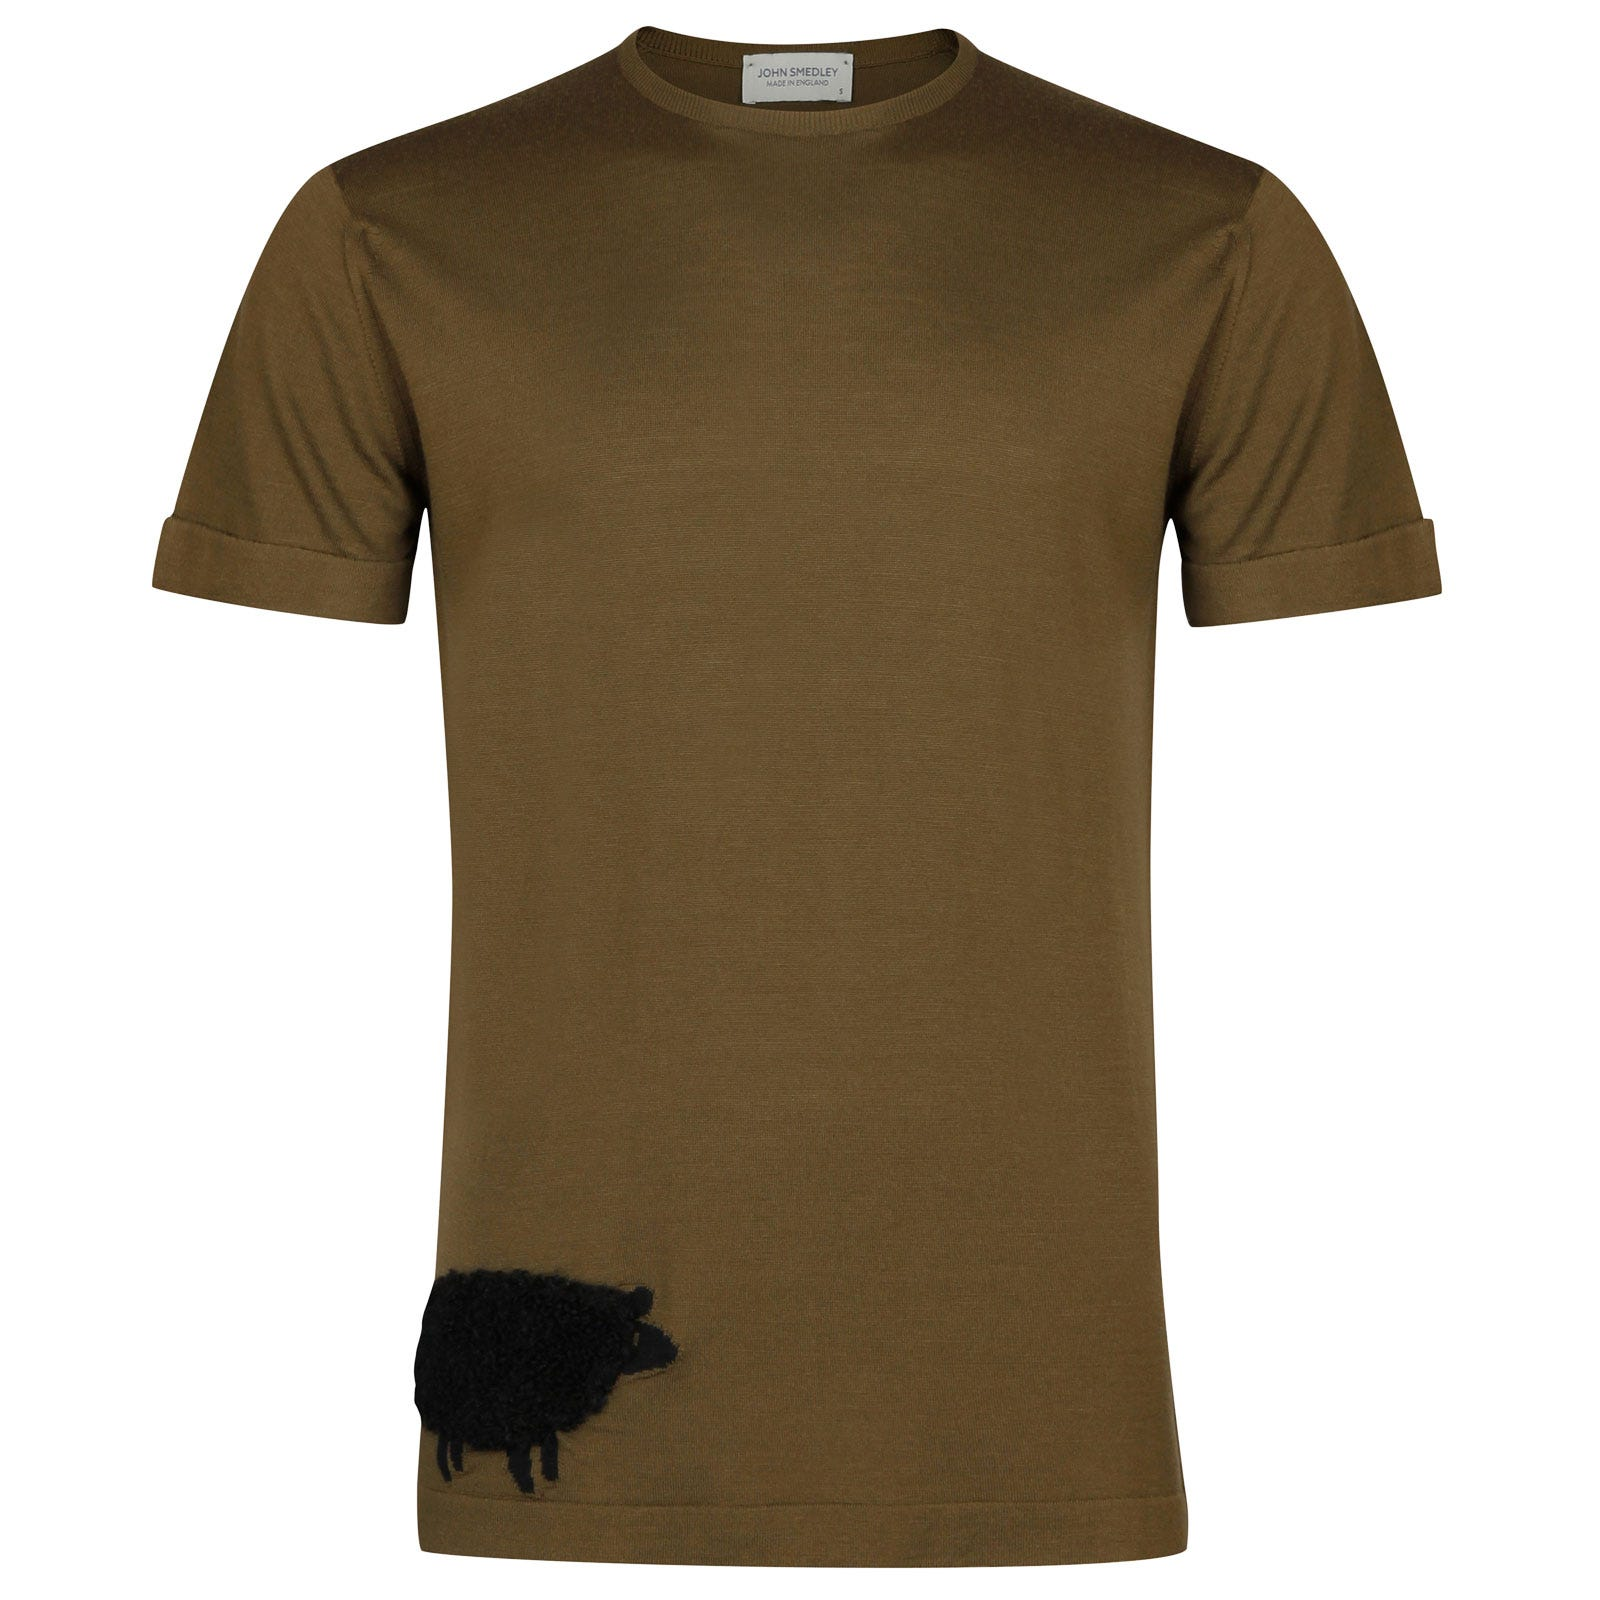 John Smedley bleat Merino Wool T-shirt in Kielder Green/Black-M